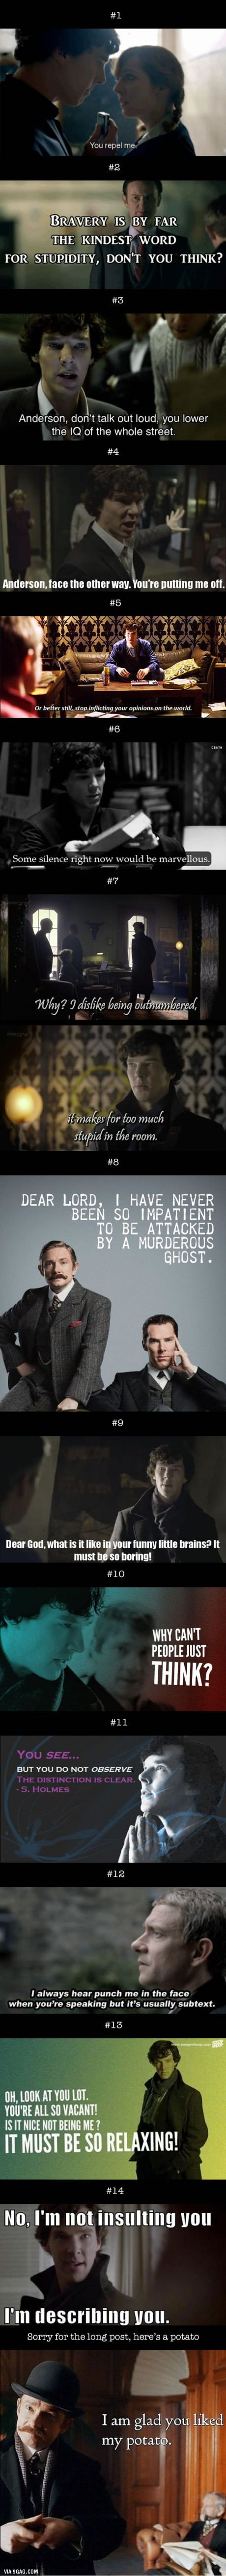 Today Is Sherlock Holmes Day! Here Are 14 Sherlock Insults To Crush Your Enemies